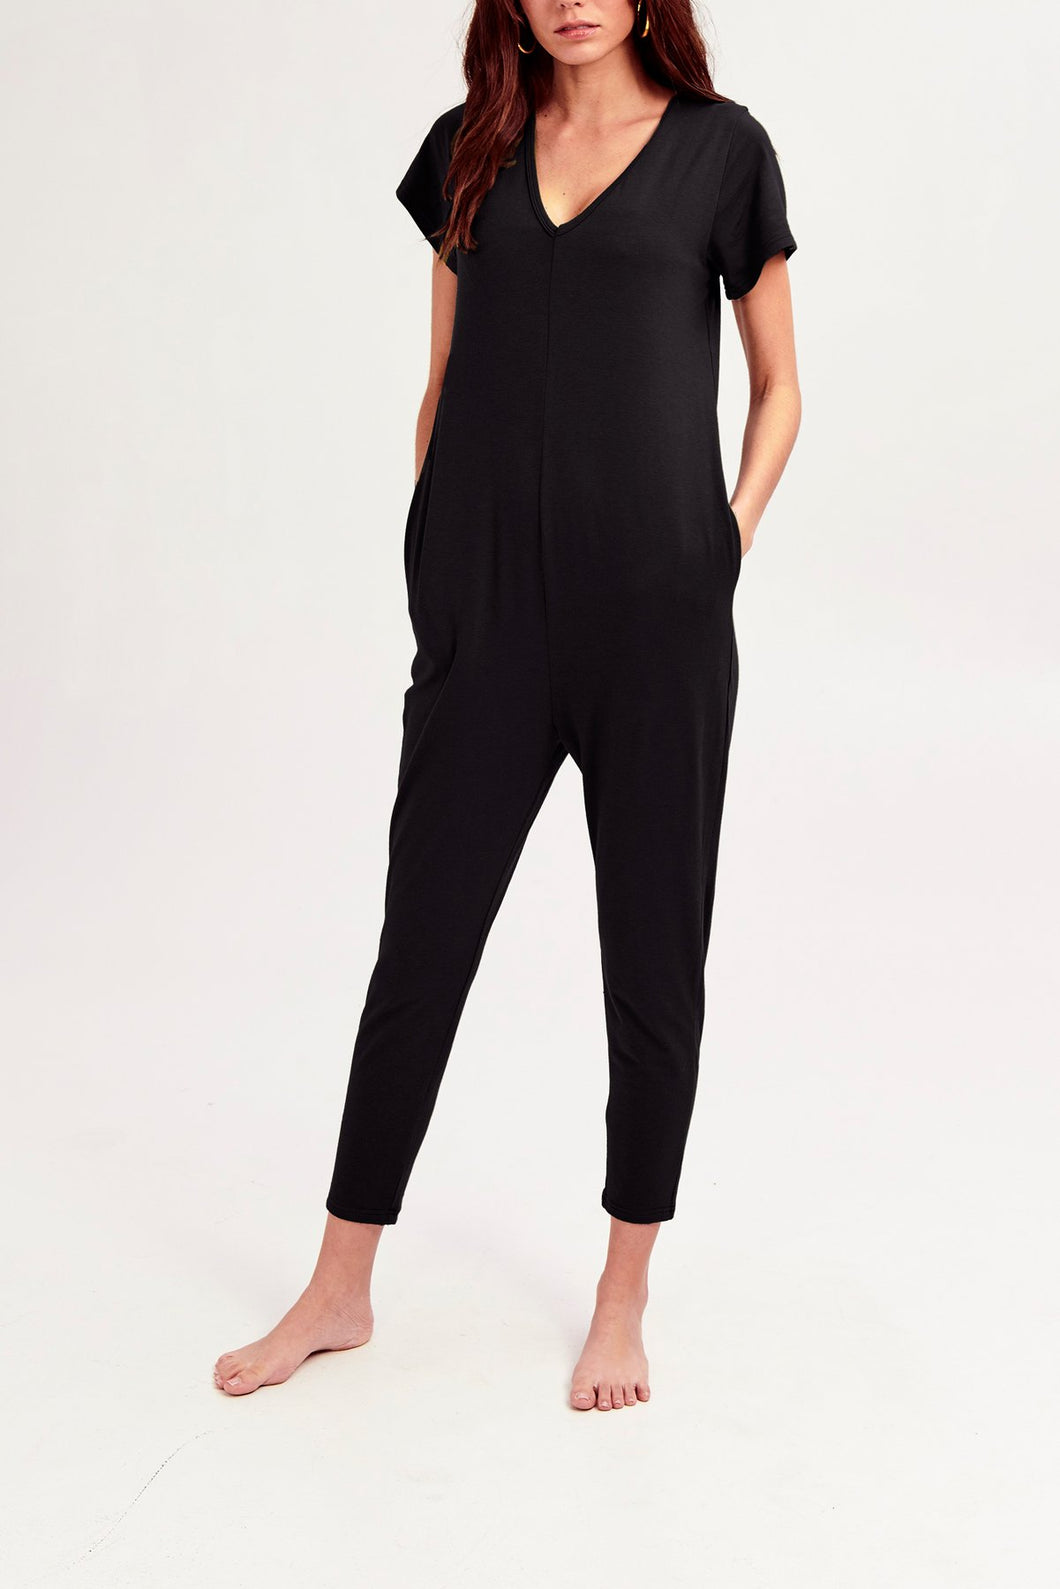 Smash & Tess Sunday Romper in Black